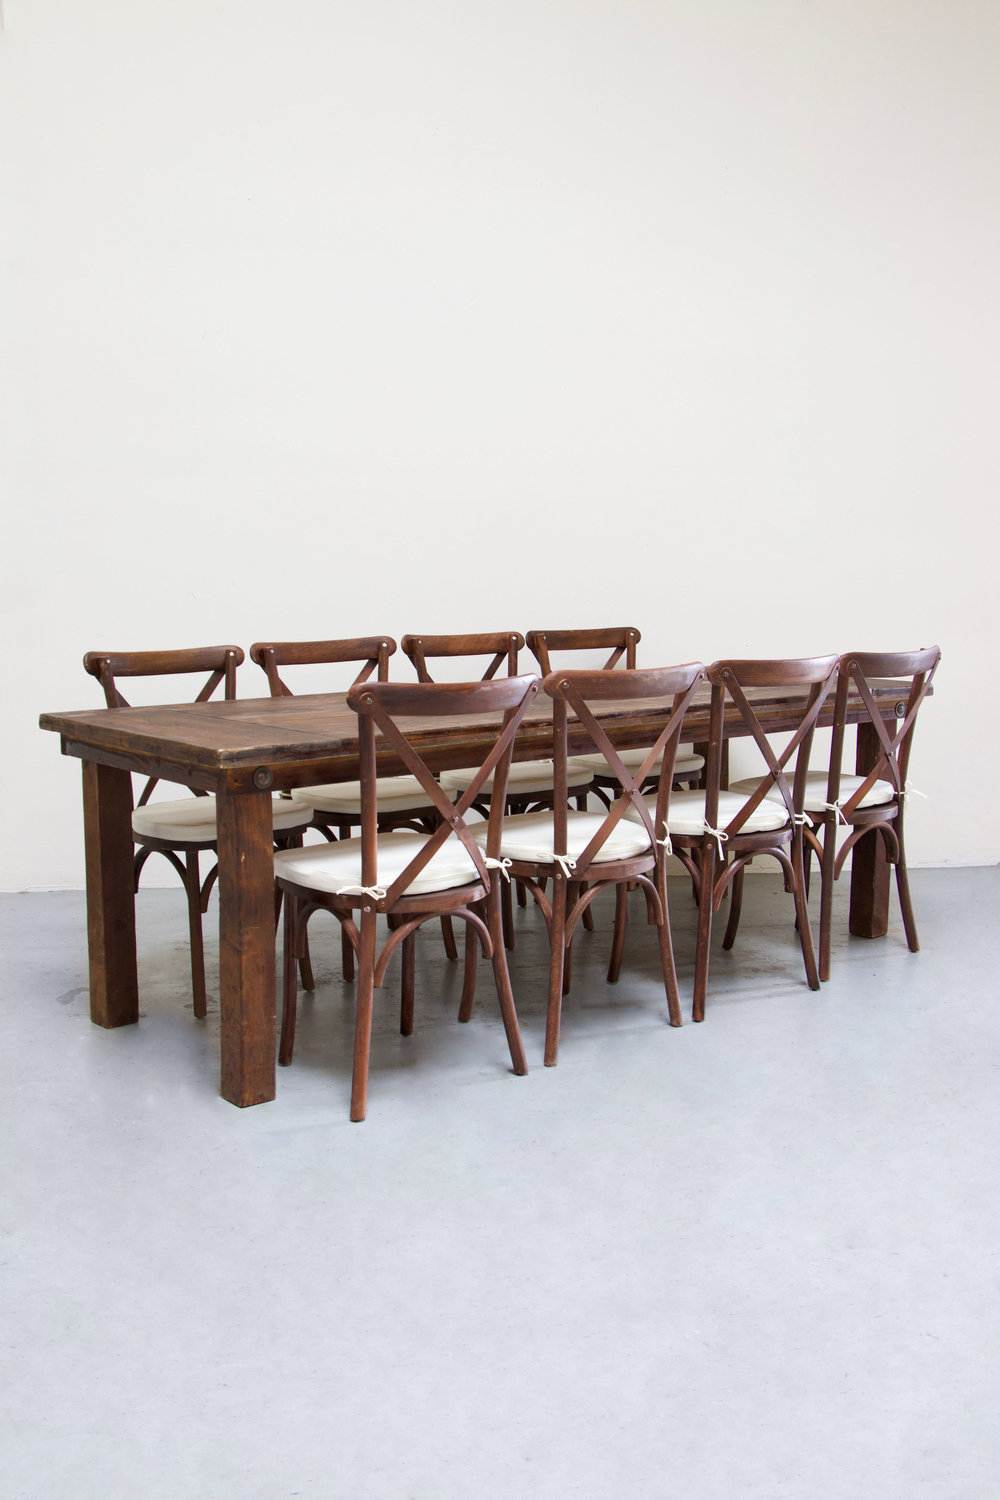 1 Mahogany Farm Table w/ 8 Cross-Back Chairs $145